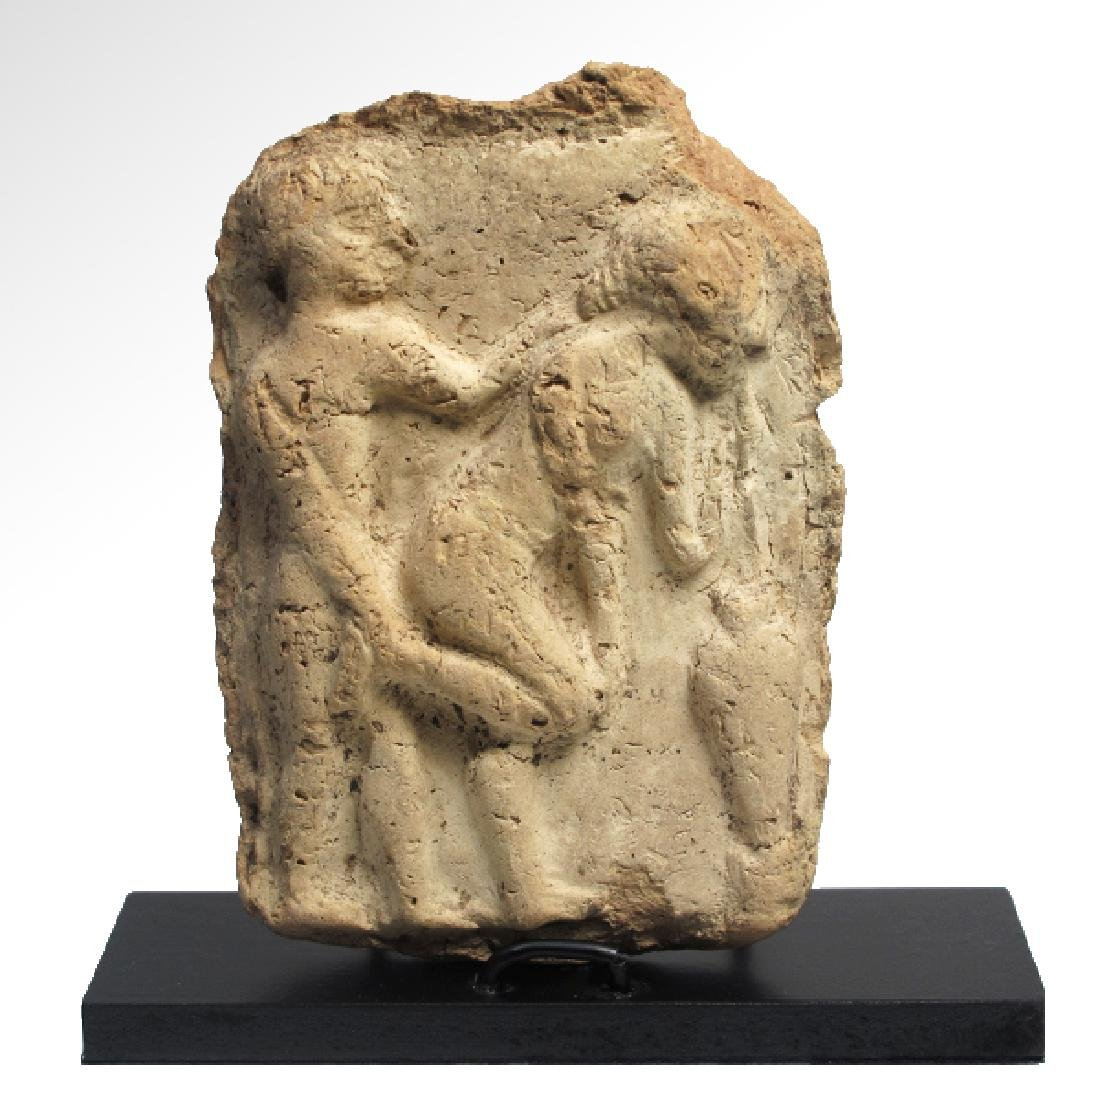 Babylonian Erotic Plaque, c. 1800 B.C. - 2